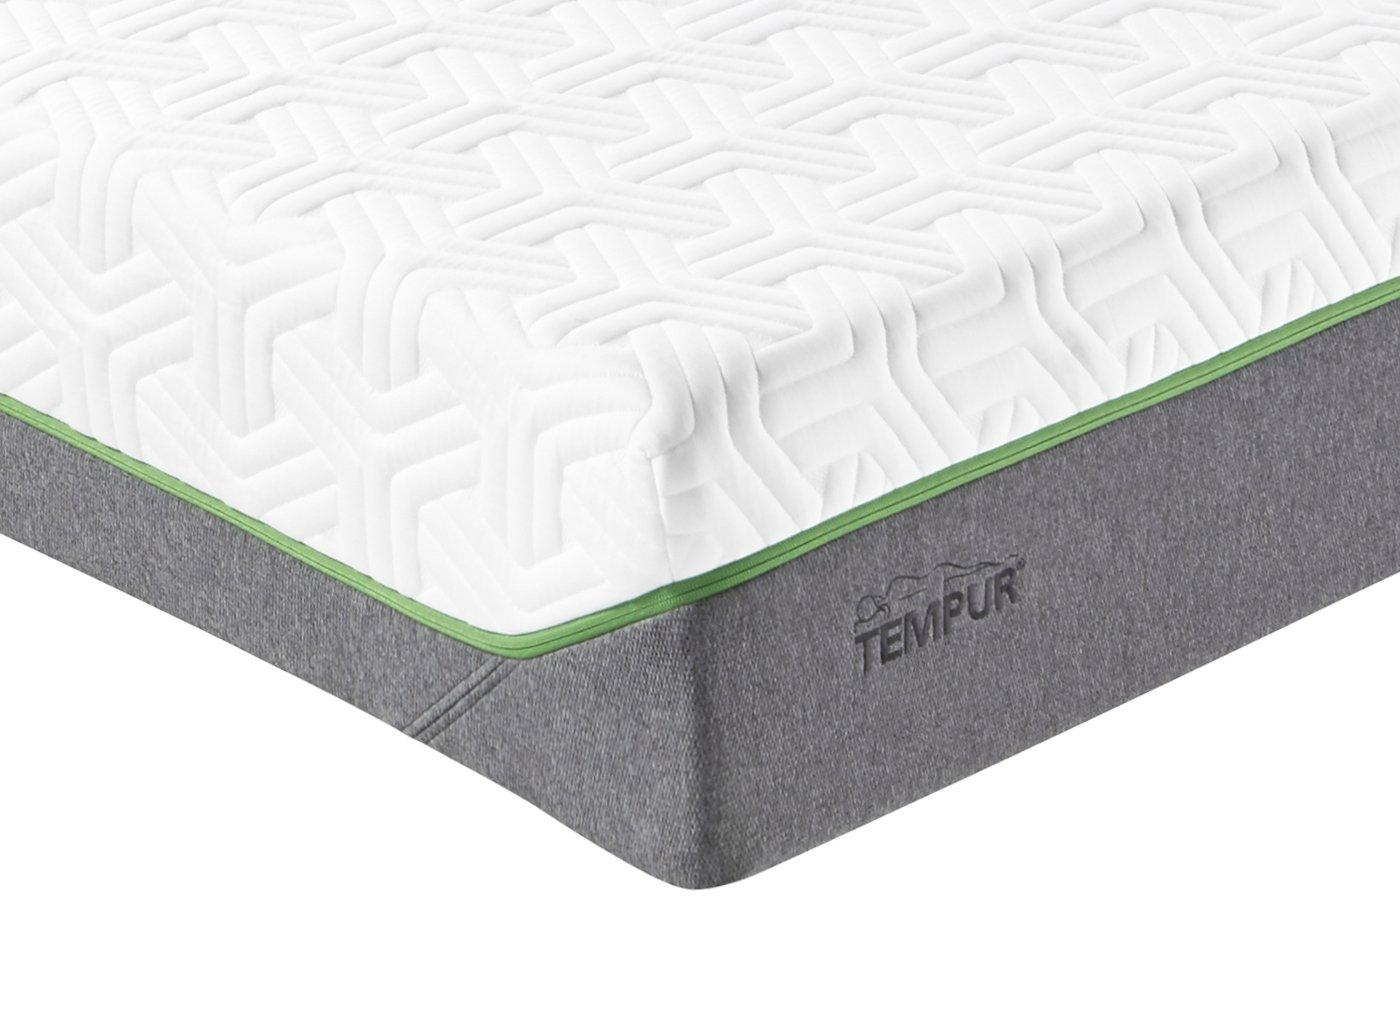 Tempur Cooltouch Hybrid Elite Mattress - Medium